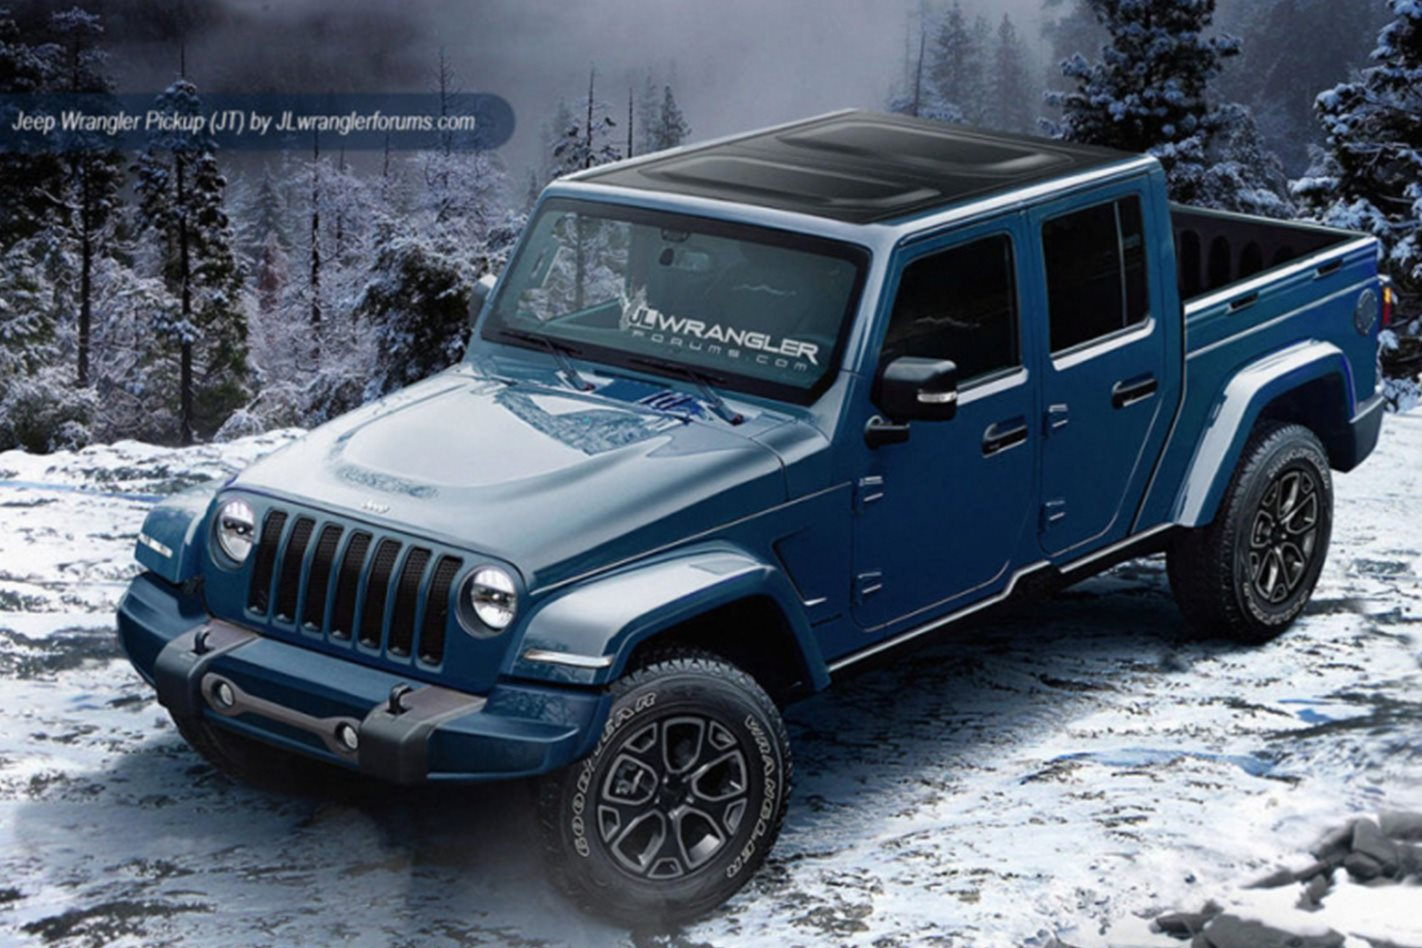 2019 Jeep pick-up to be called Scrambler